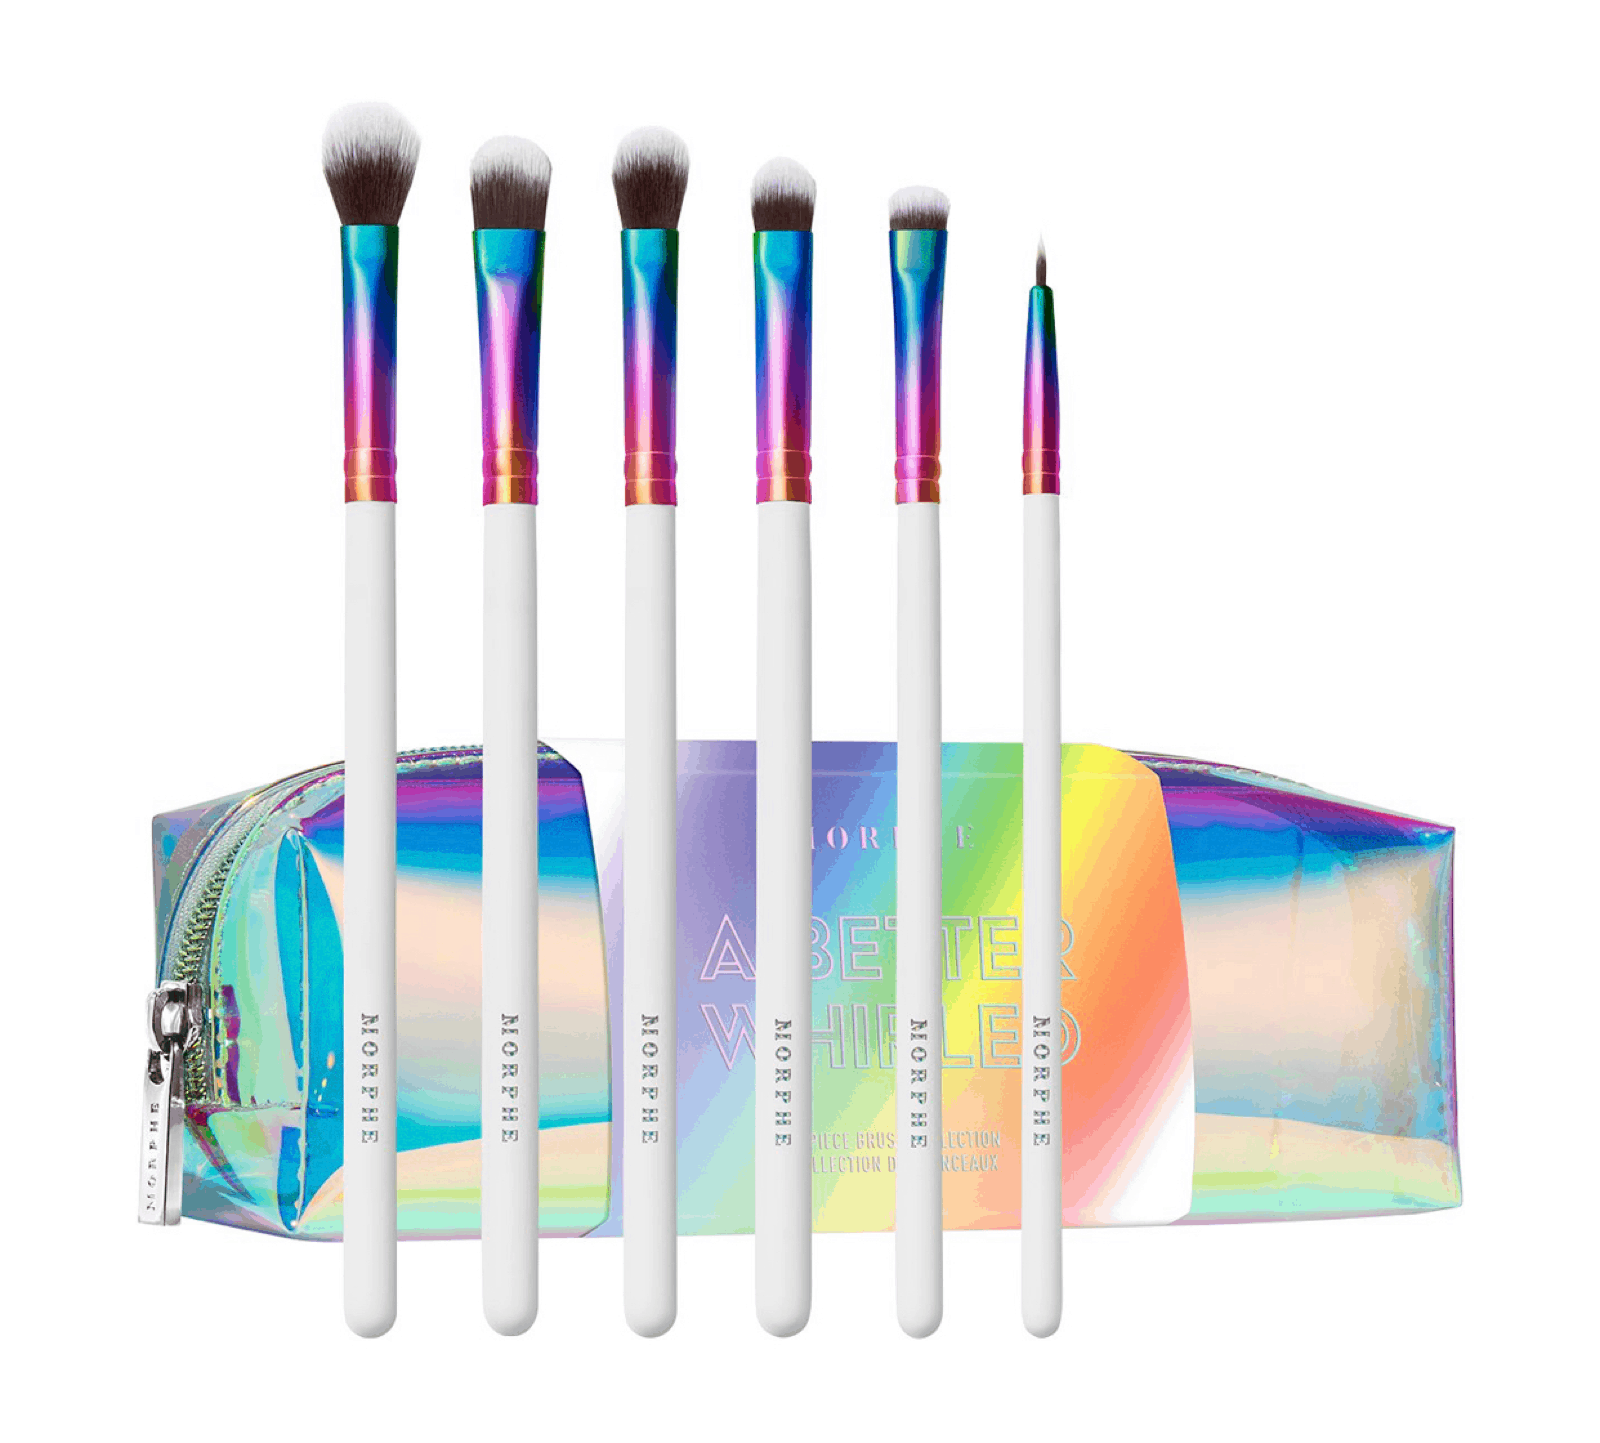 Morphe x GLSEN Pride Collection 2020